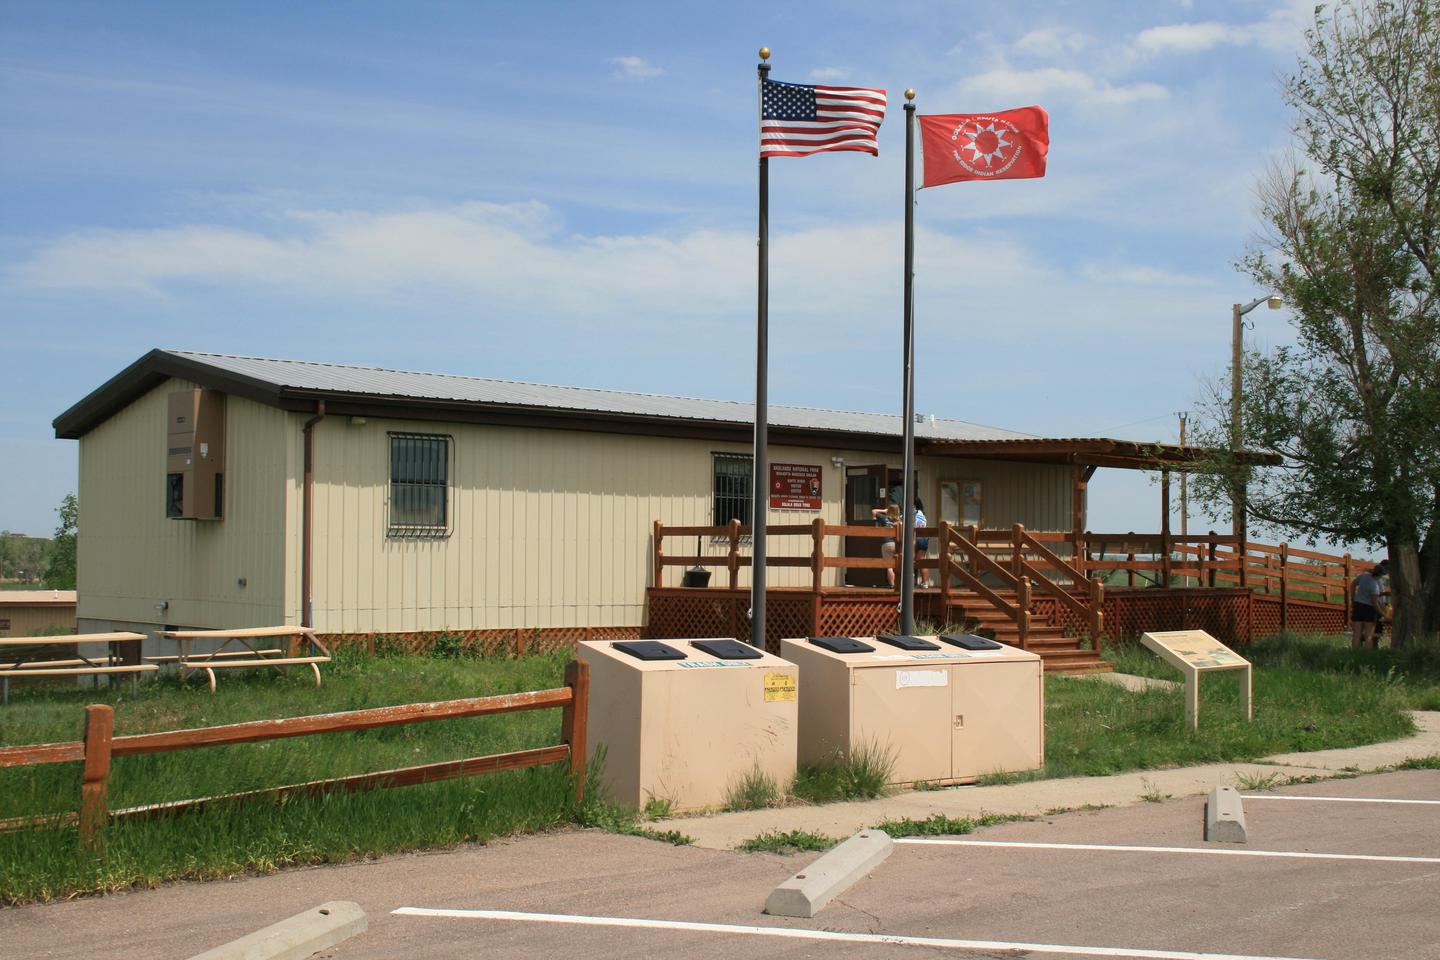 White River Visitor Center 001The visitor center is located on Pine Ridge Indian Reservation and flies the flag of the Oglala Sioux Tribe accordingly.